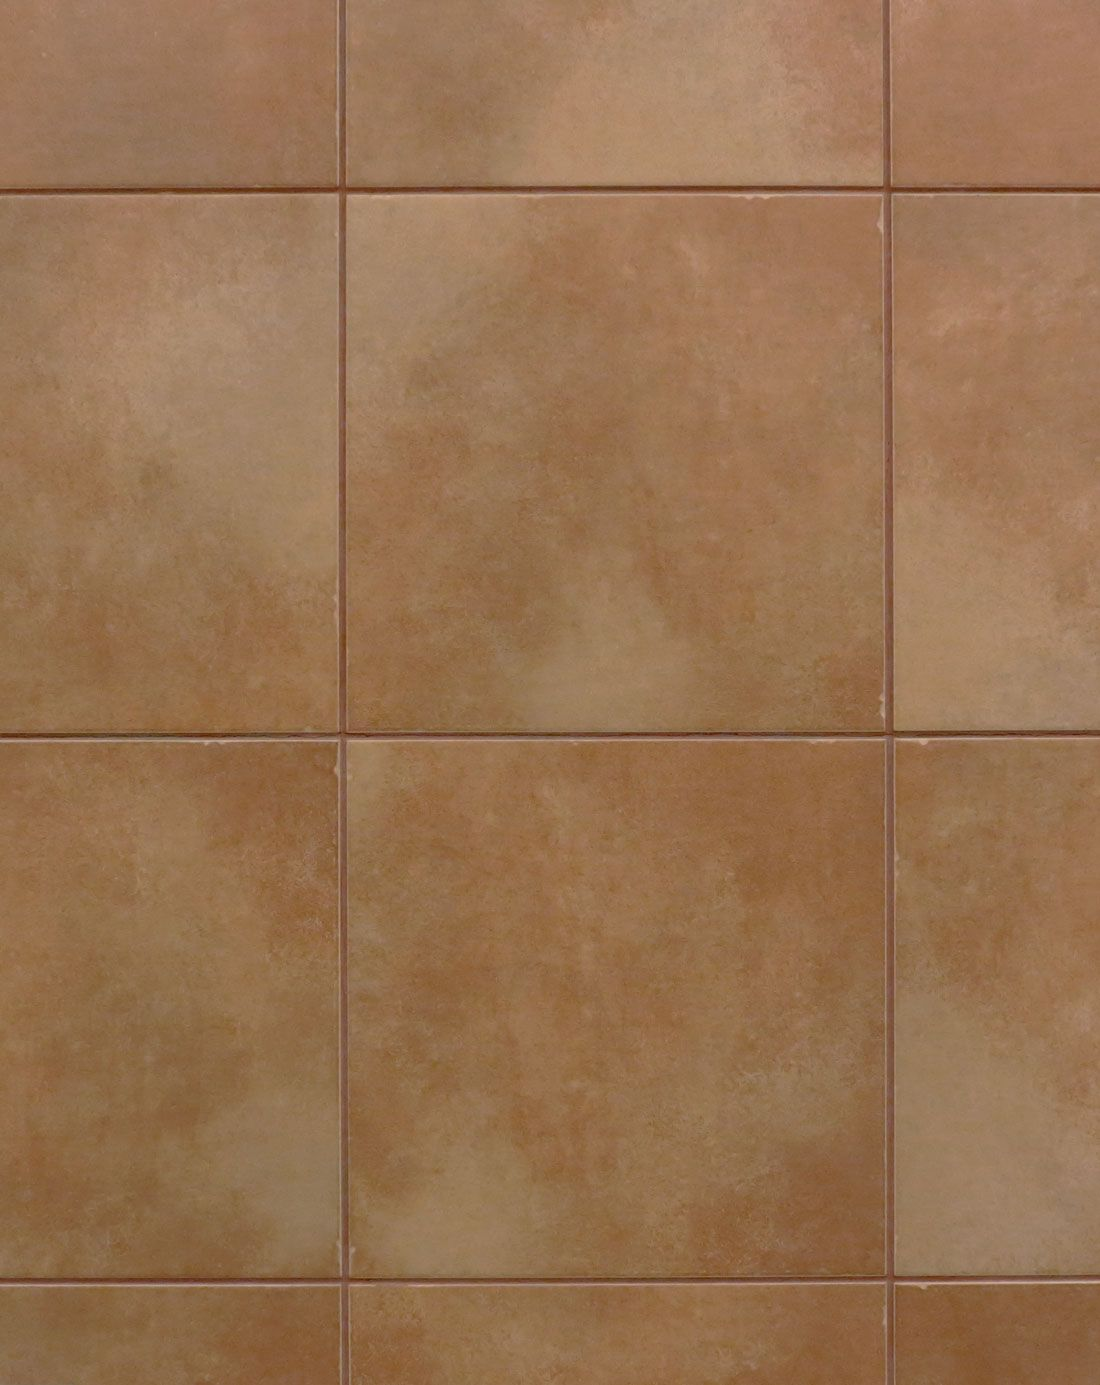 Tavascan ocre kitchen floor tile a terracotta effect ceramic floor kitchen tiles direct great priced tavascan ocre kitchen floor tiles free next day delivery on orders over free samples with free postage dailygadgetfo Image collections